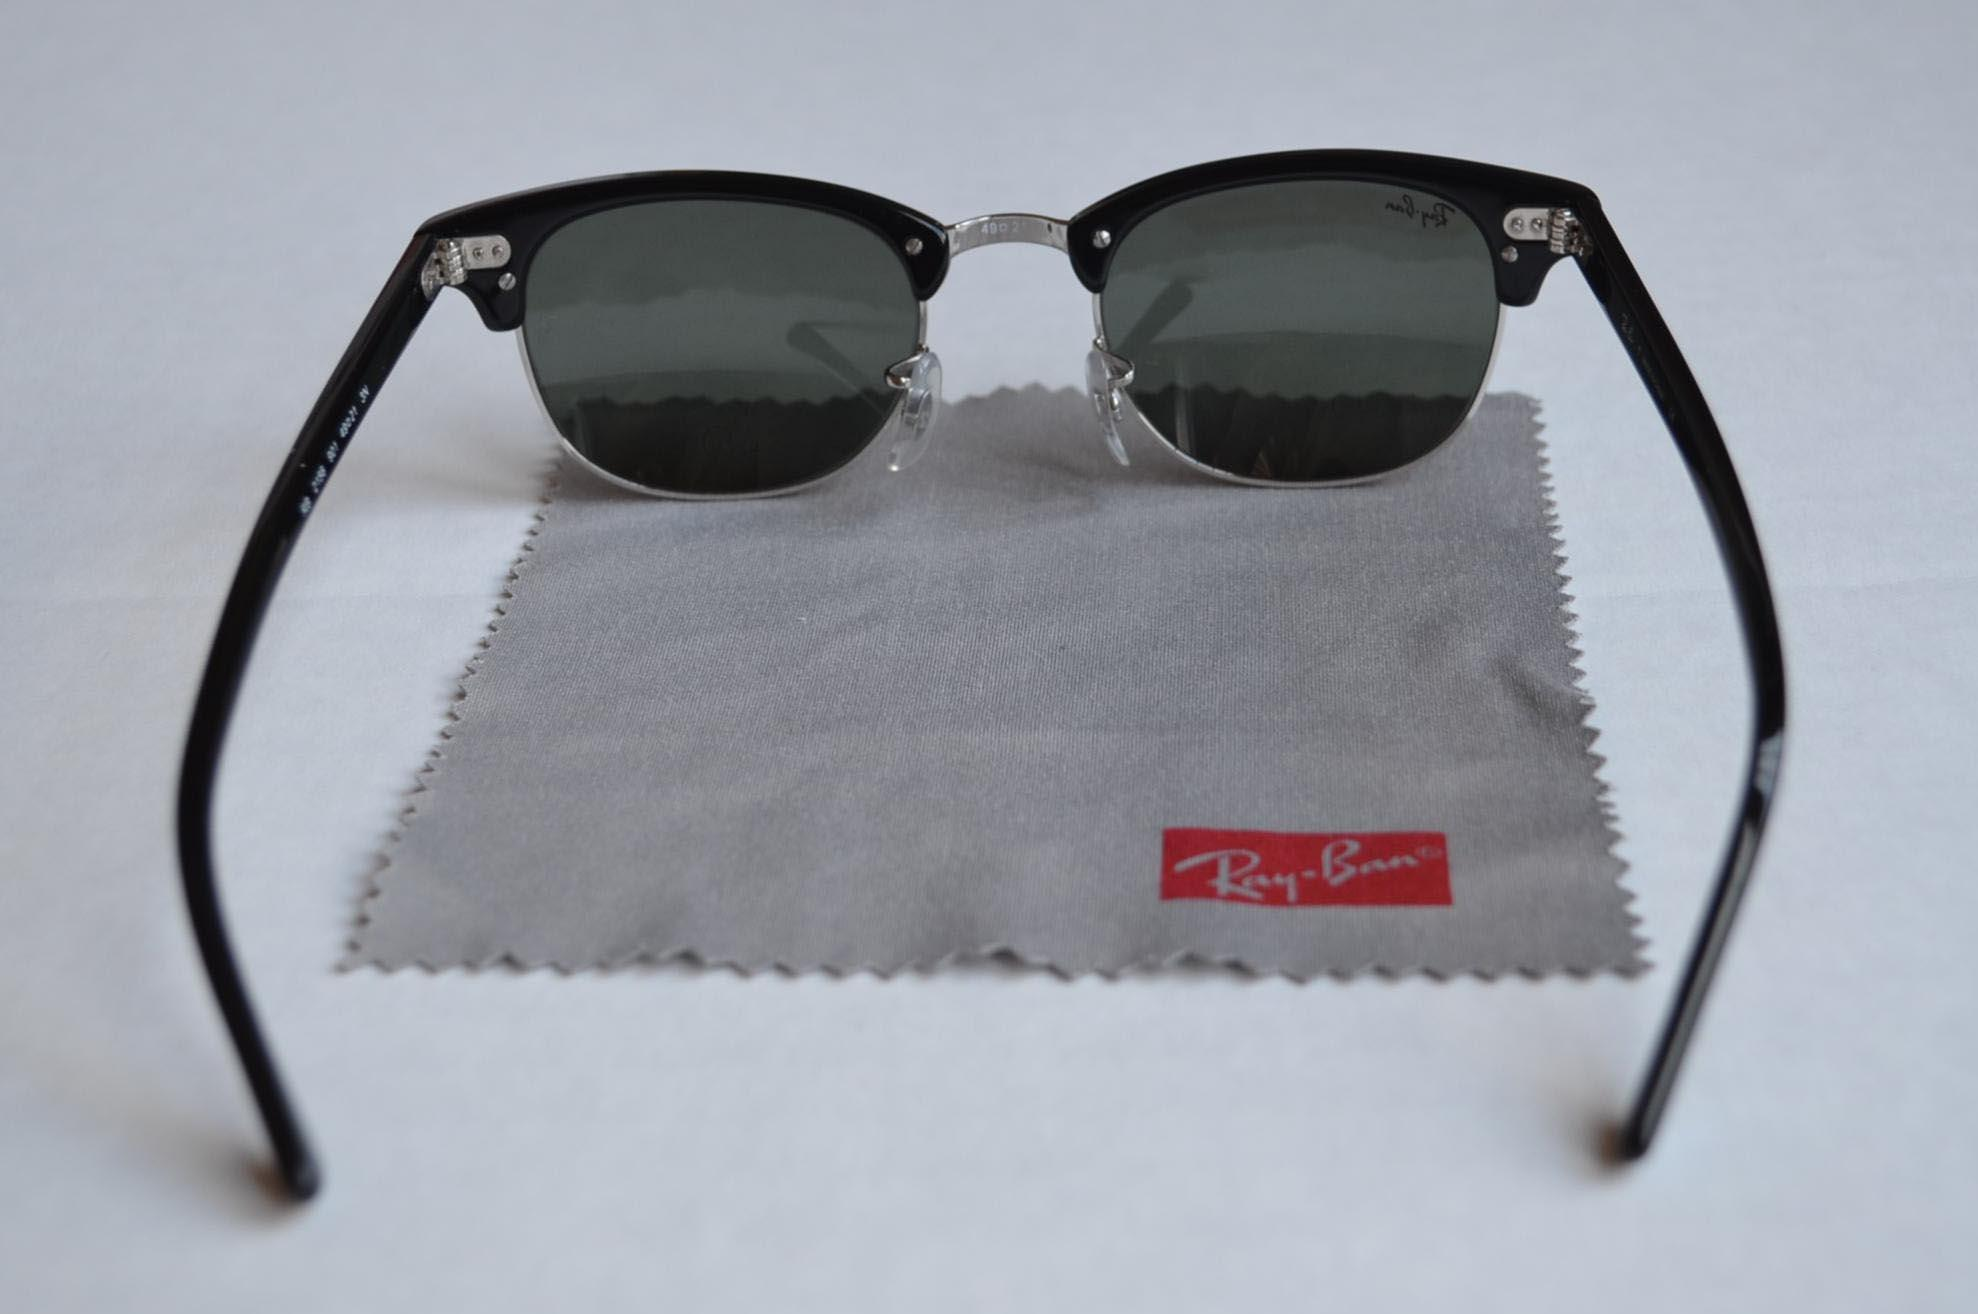 c87c47d906 ... 50% off ray ban clubmaster classic rb2156 901 c4c64 6582f